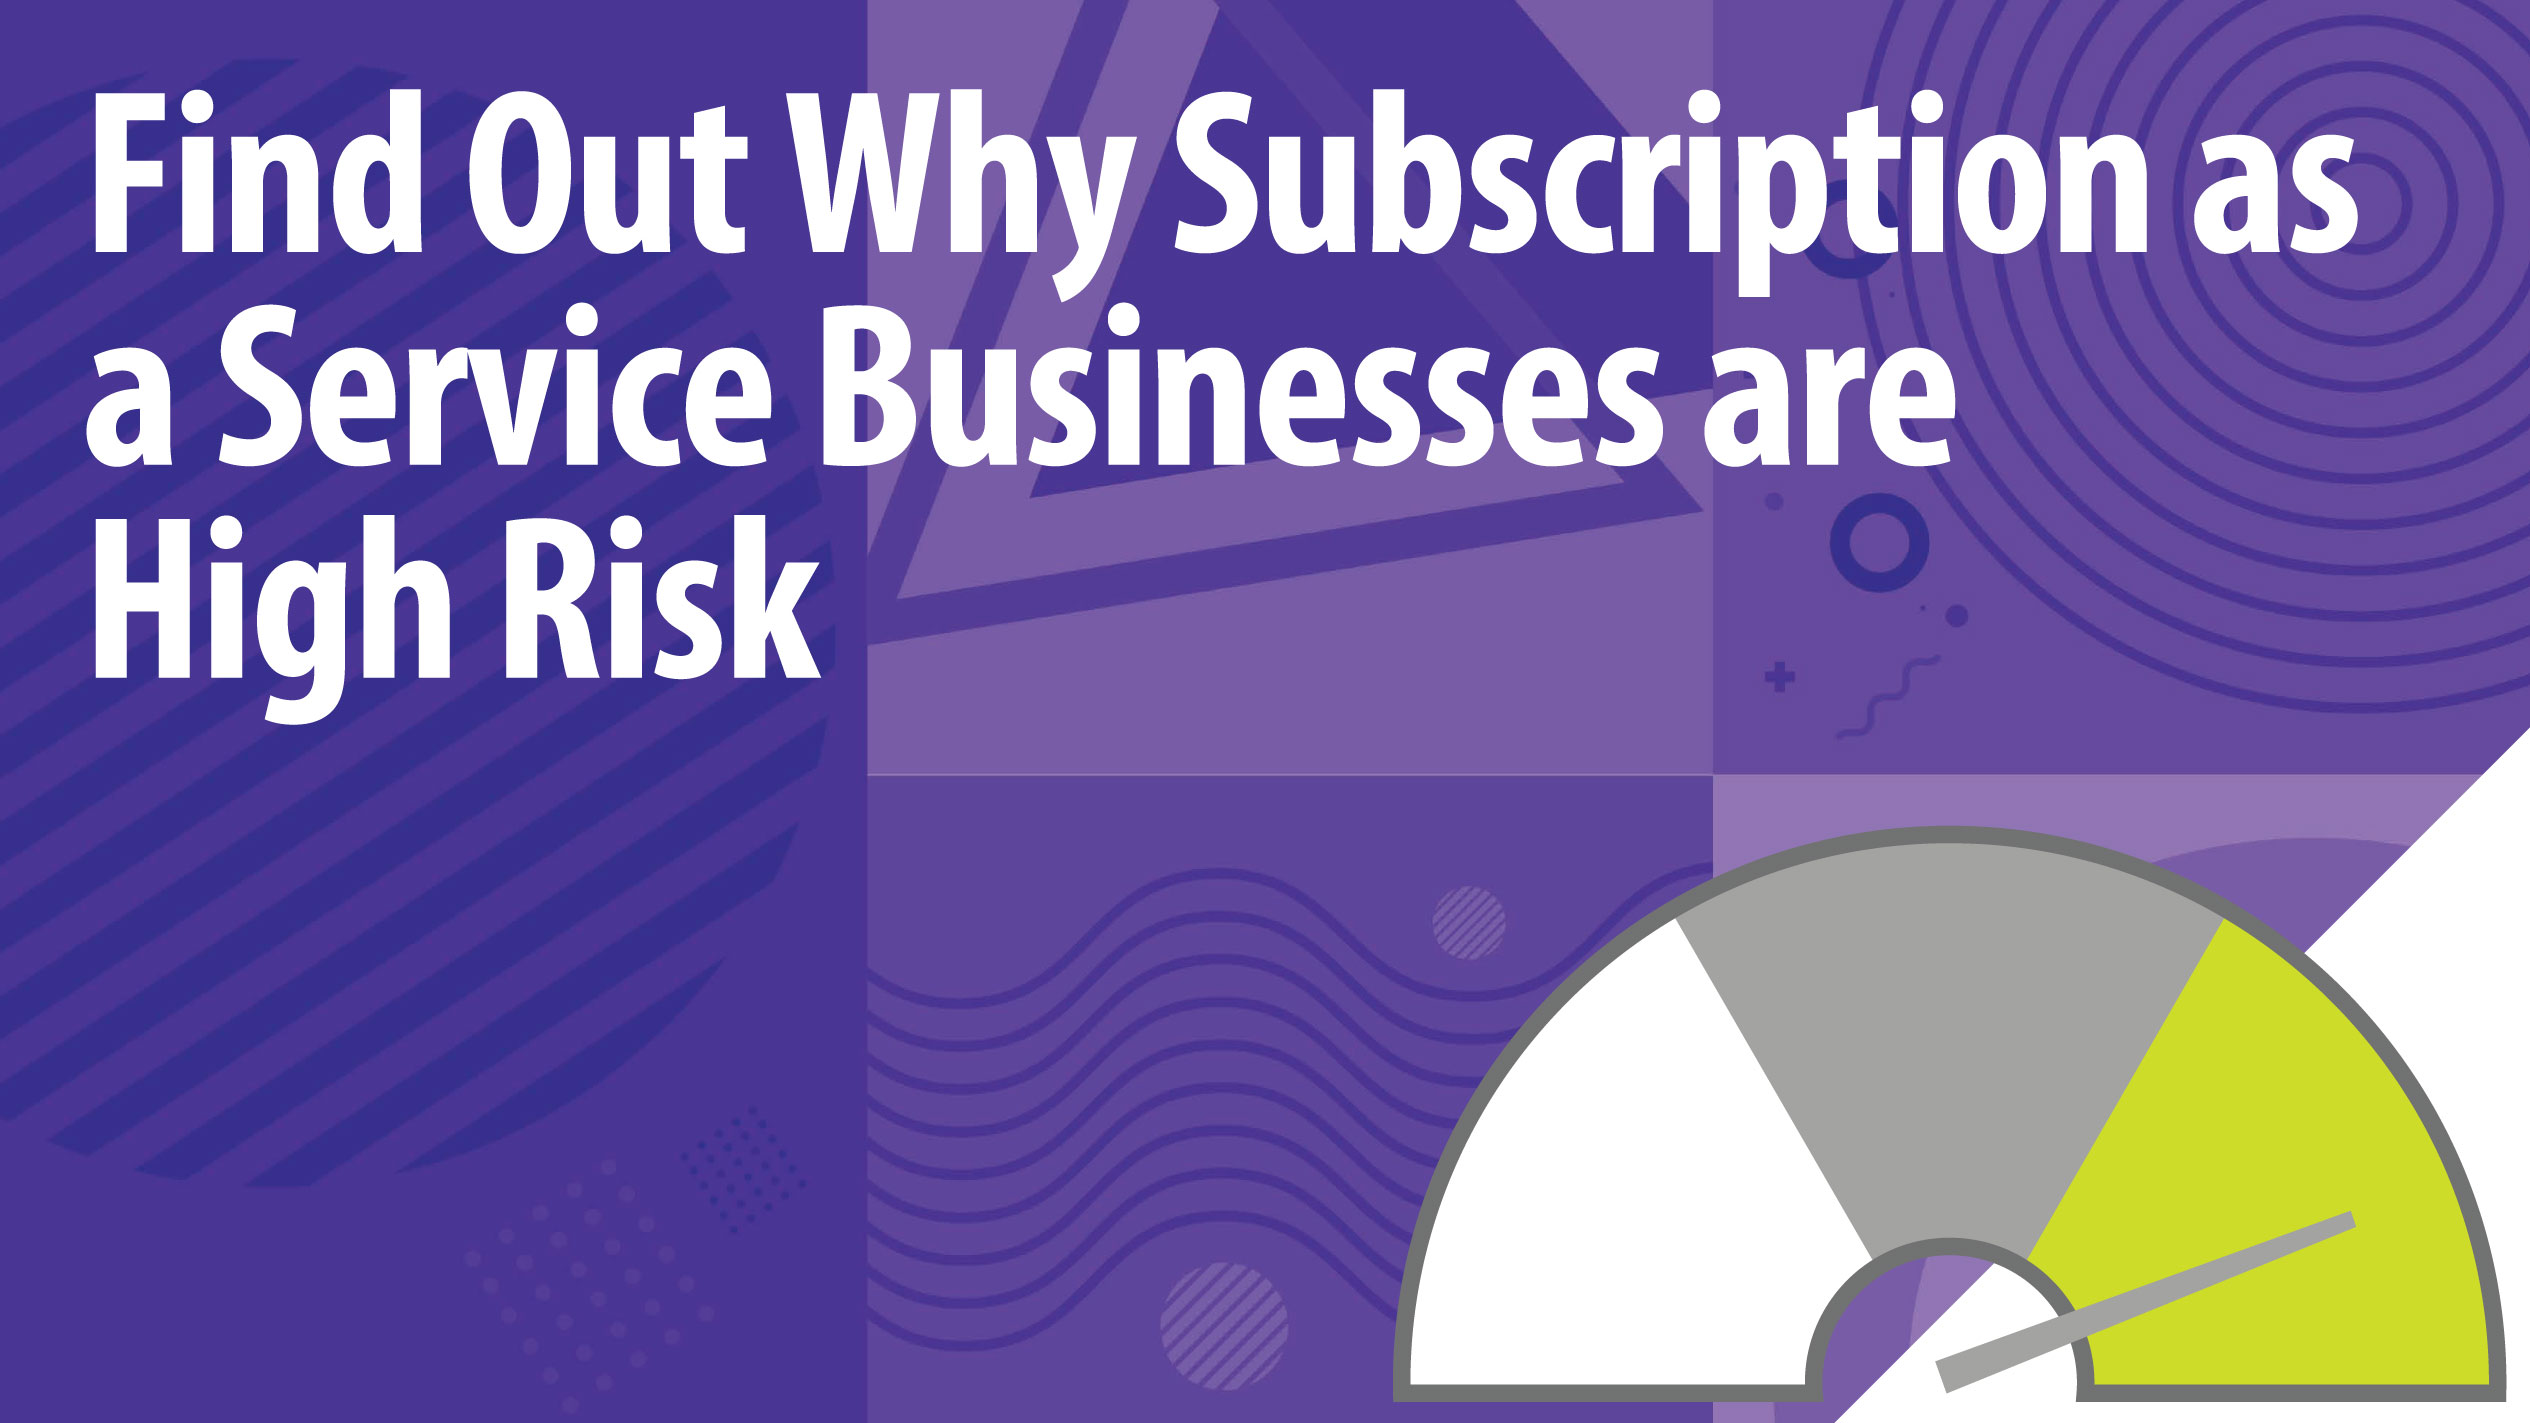 Find Out Why Subscription as a Service Businesses are High Risk